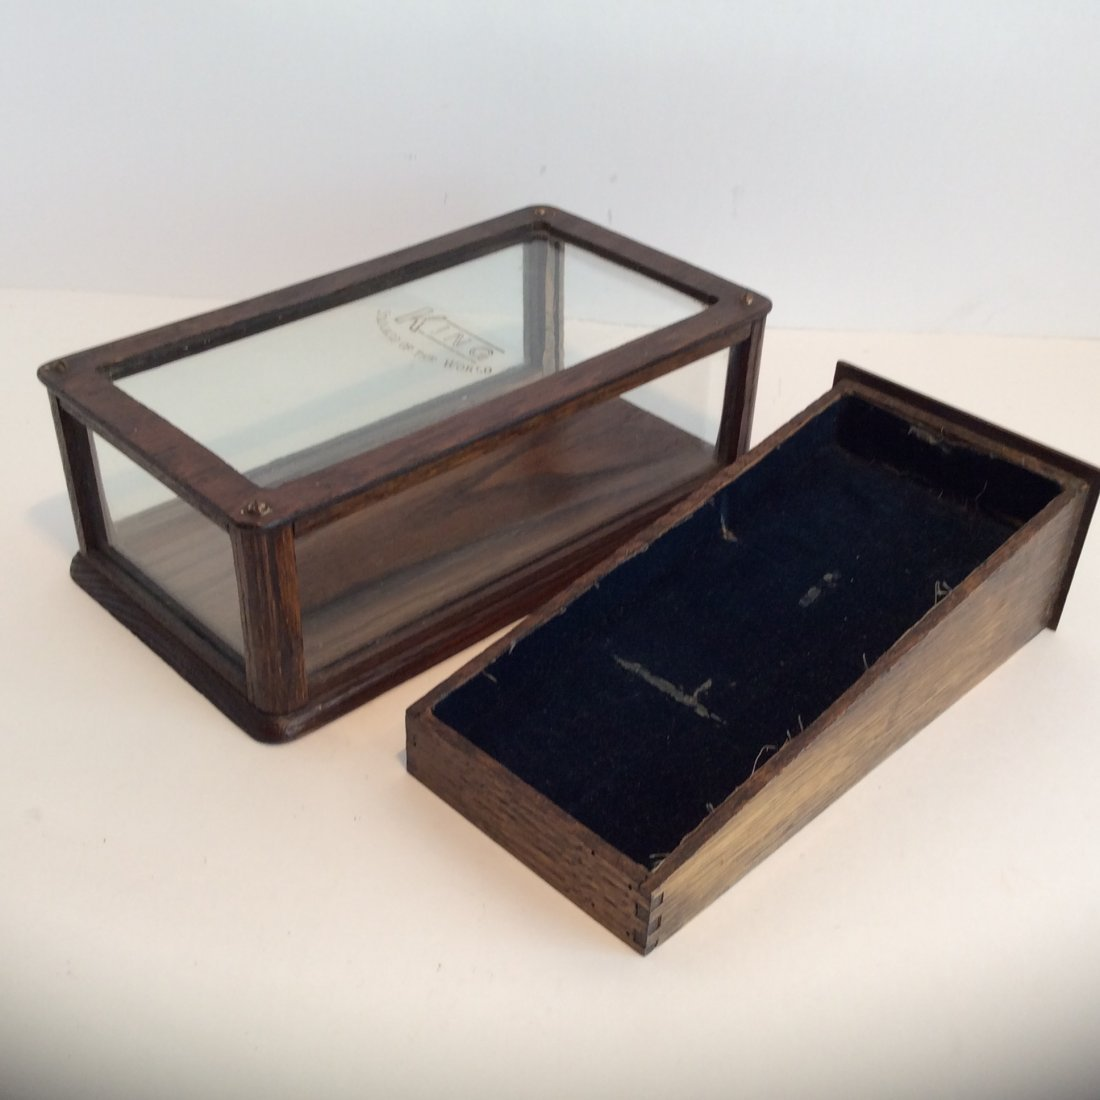 Antique King  stand of the world  display case 1880 - 2